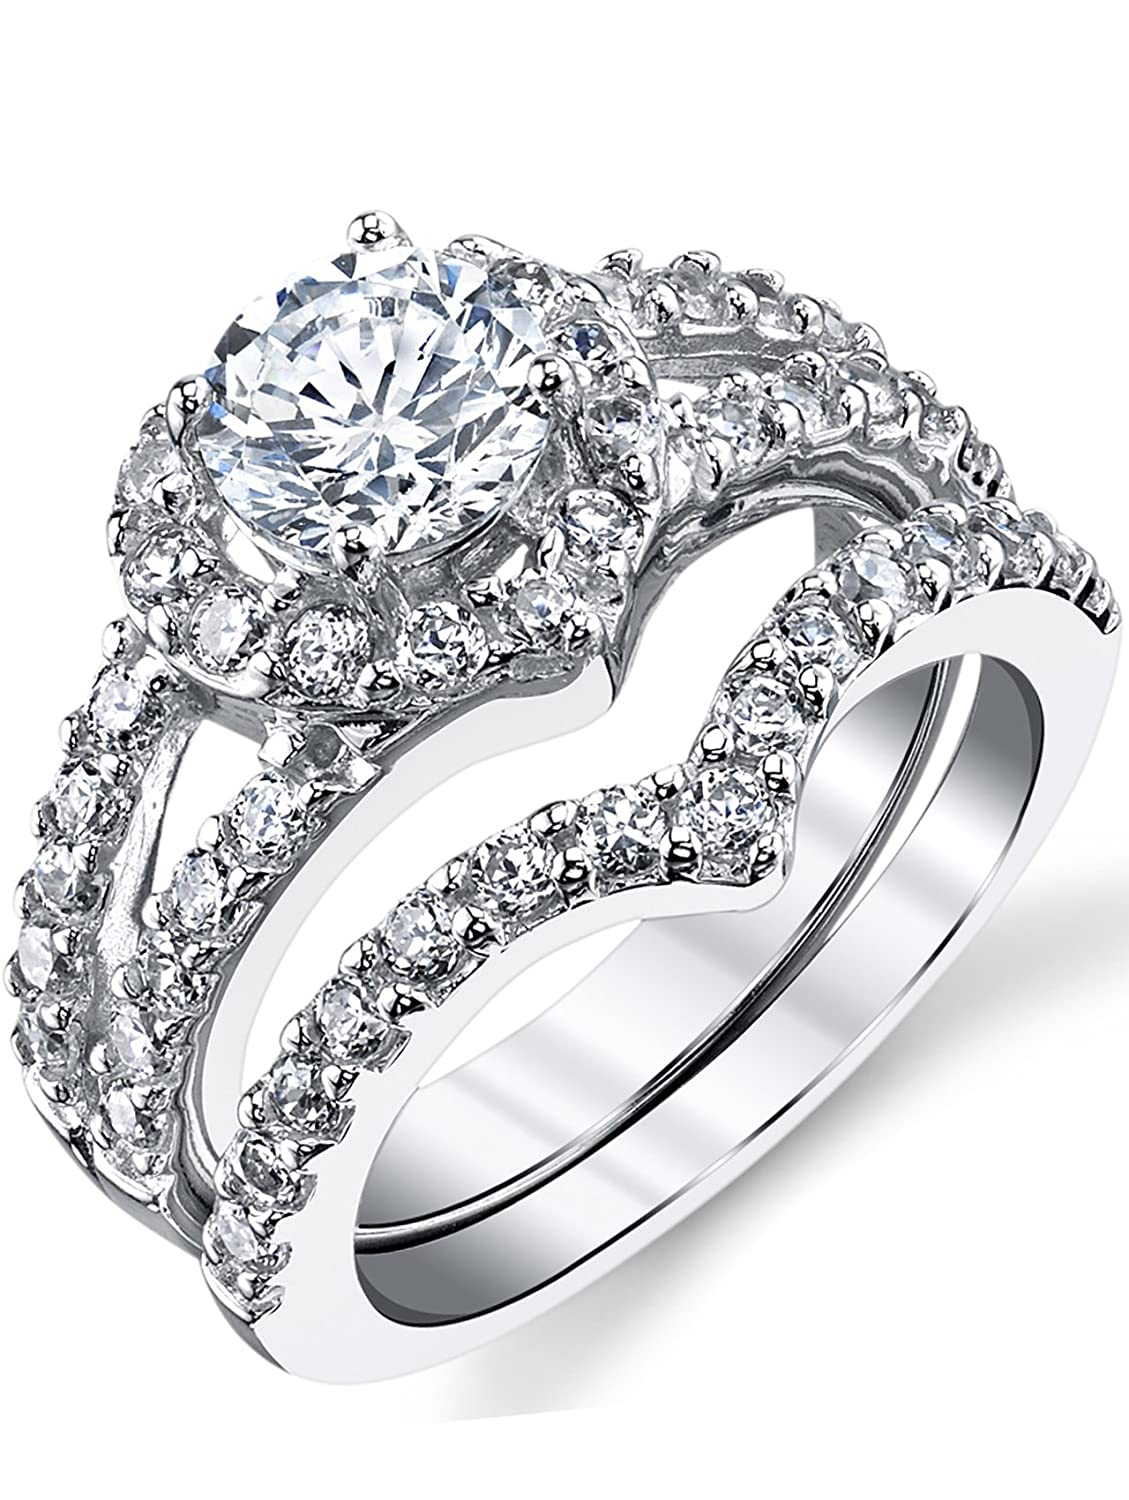 Amazon Round Brilliant Cut Heart Shaped Sterling Silver 2pc Bridal Set Engagement Wedding Ring Bands Wcubic Zirconia Jewelry: 2 Pc Wedding Ring Sets At Reisefeber.org